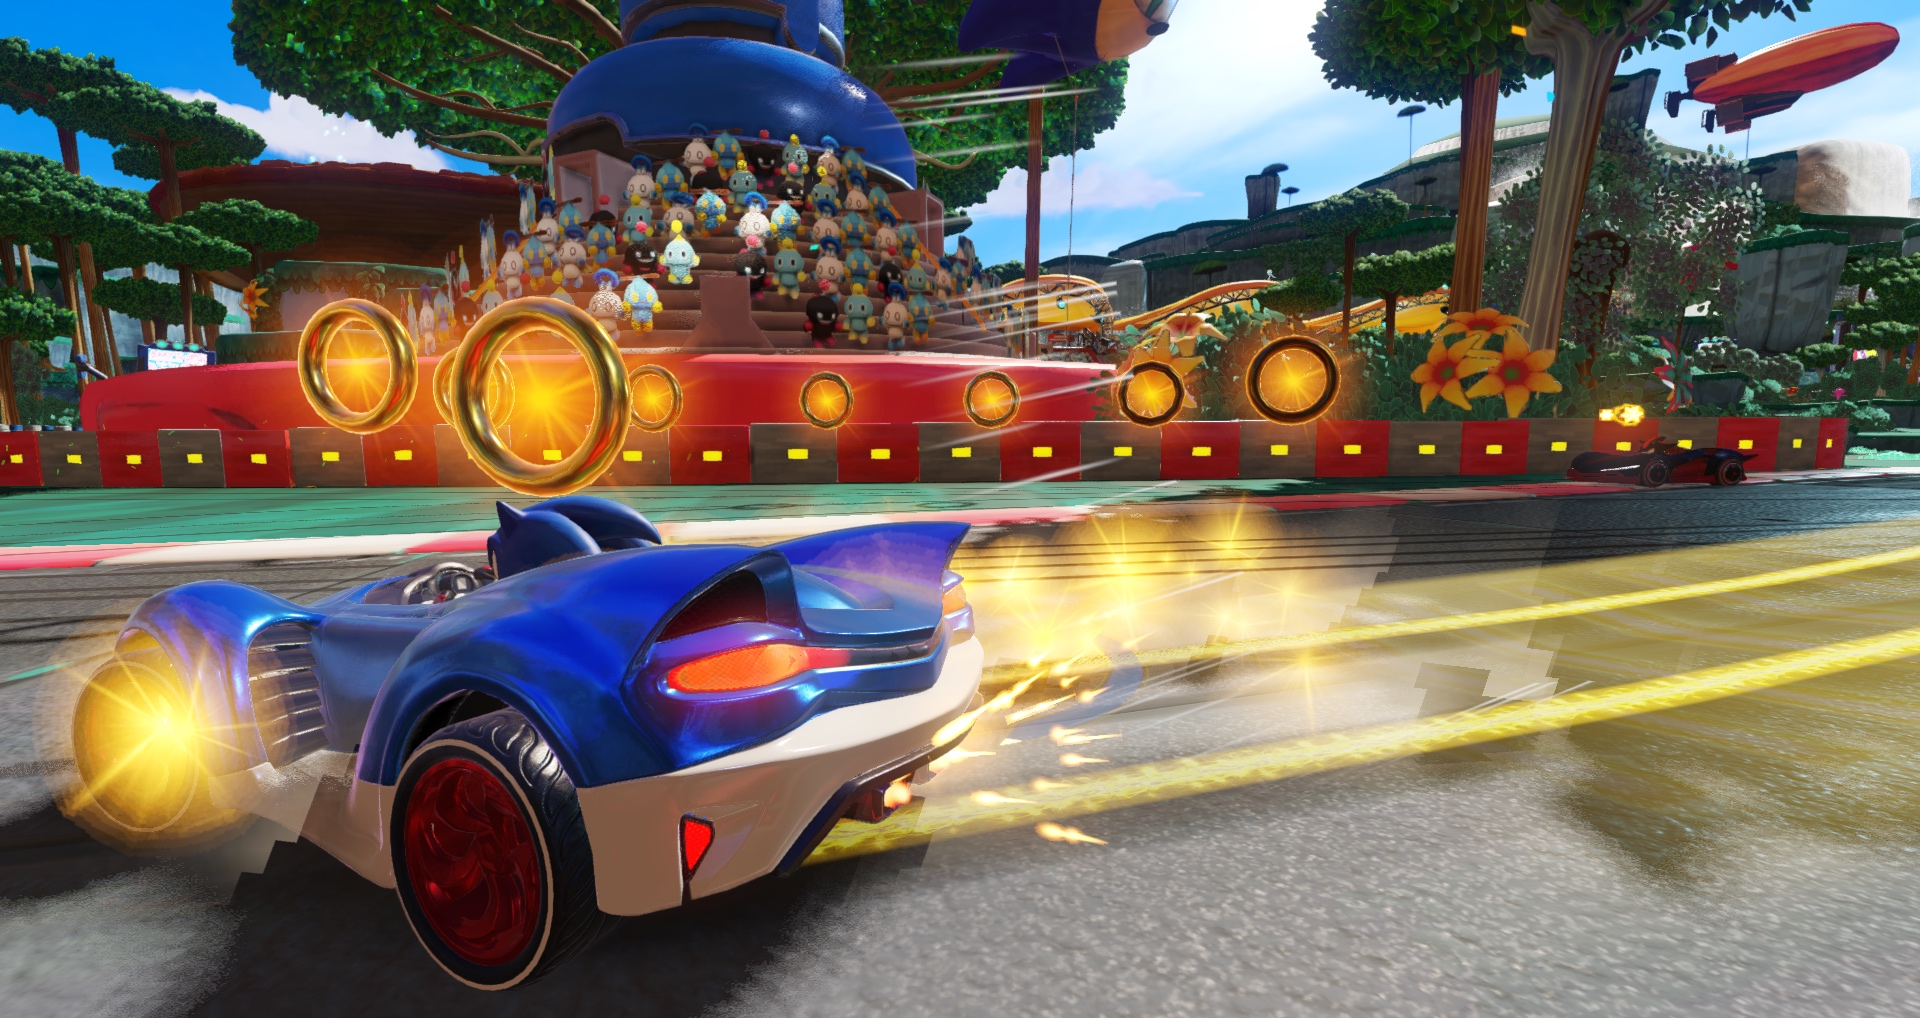 New Sonic Game For Ps4 : A new team based sonic racing game is coming polygon